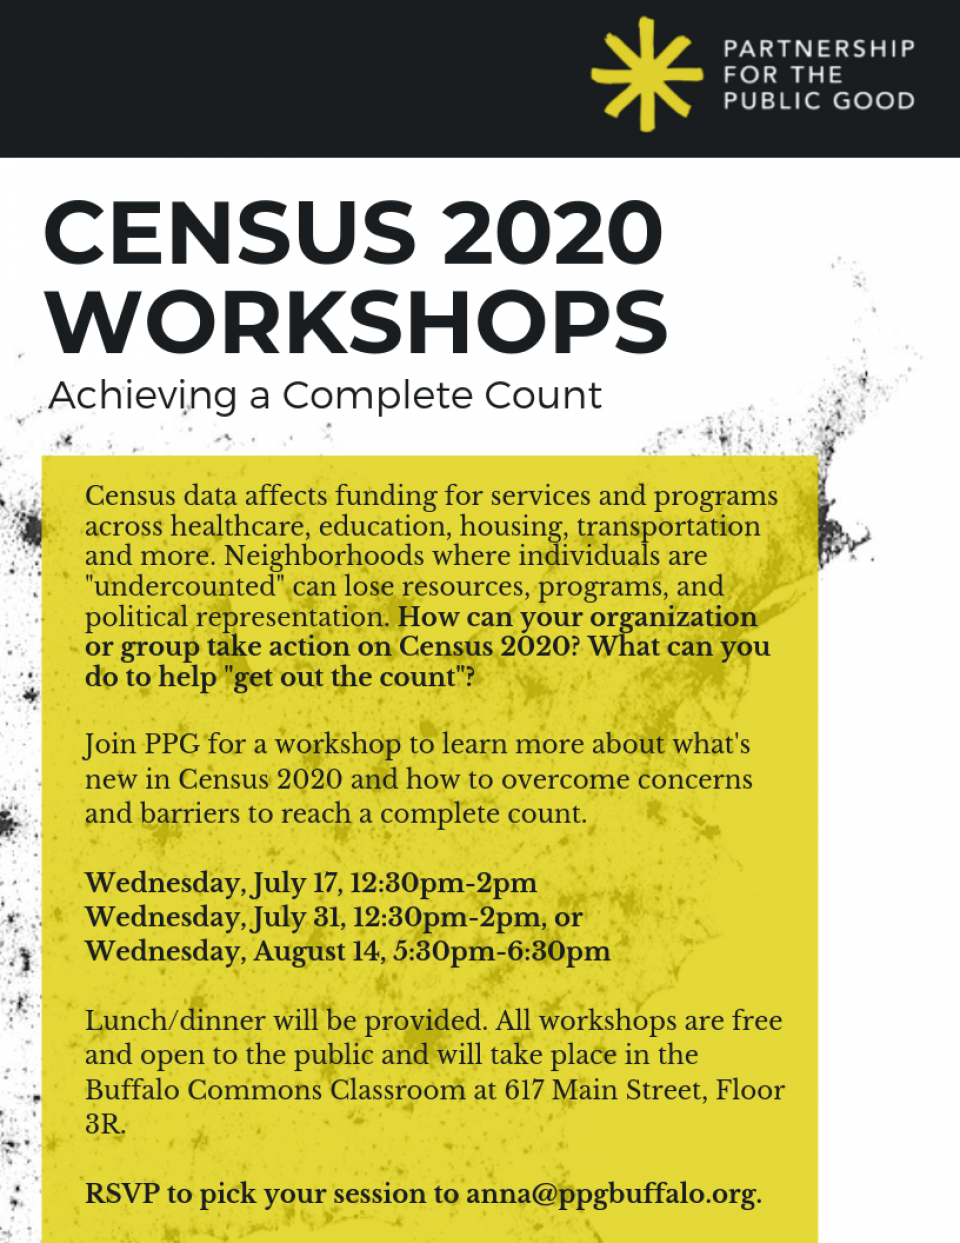 Census 2020 Workshops: Achieving a Complete Count